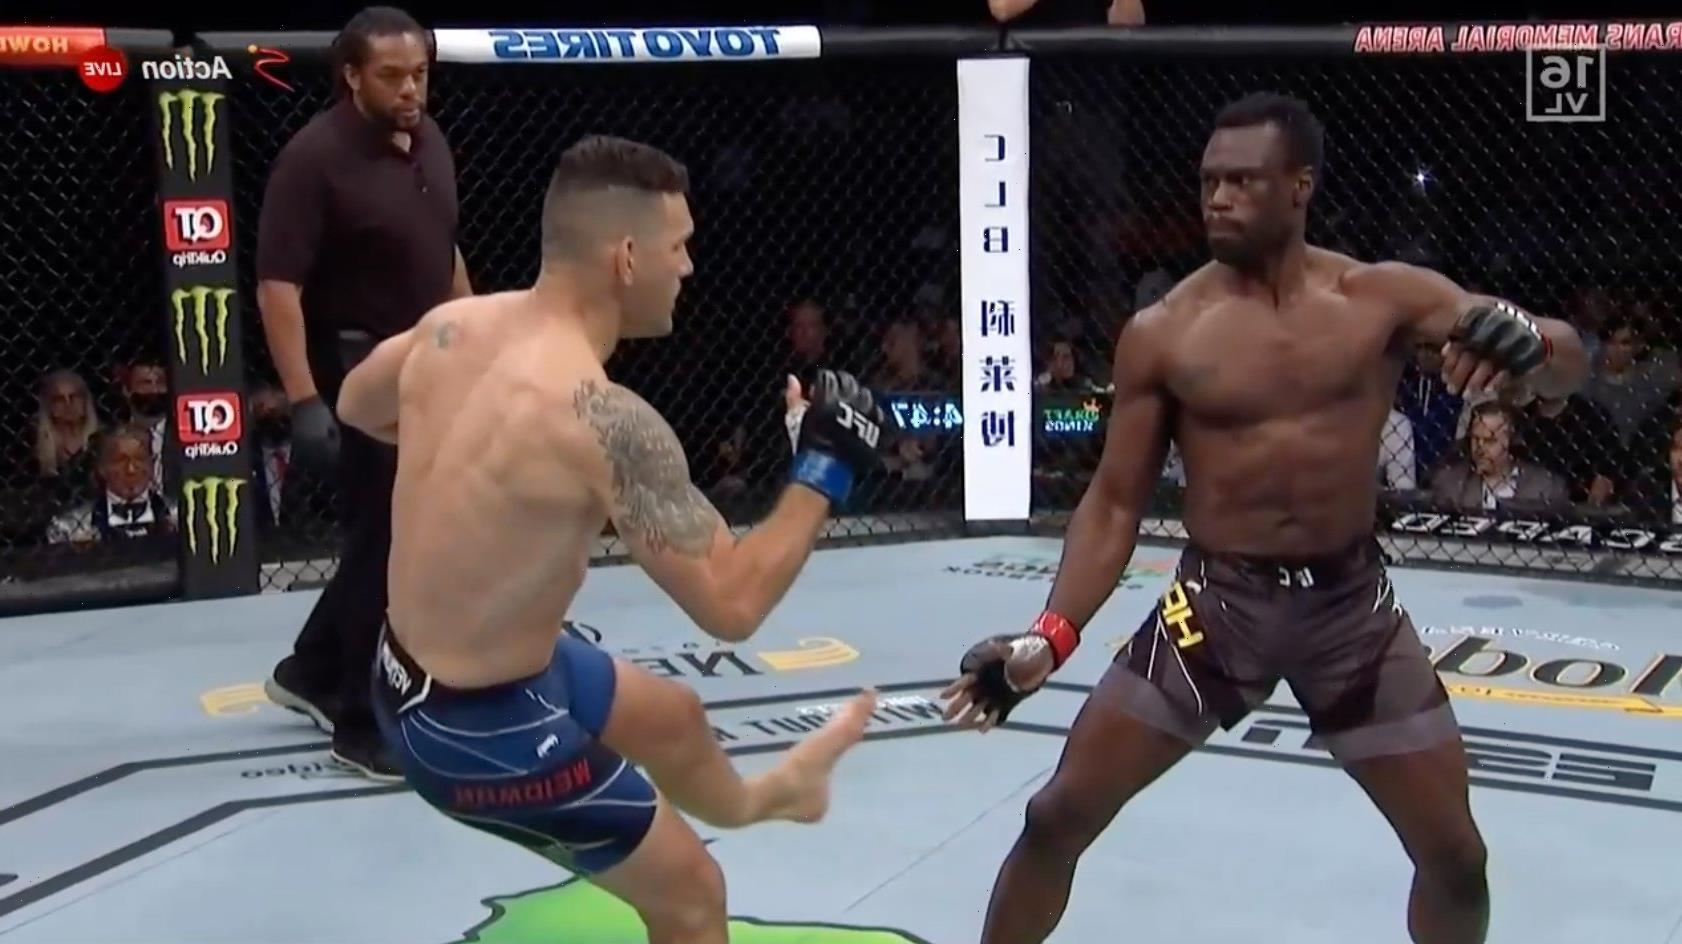 Chris Weidman suffers horrific leg break in UFC 261 clash against Uriah Hall and is stretchered out of arena